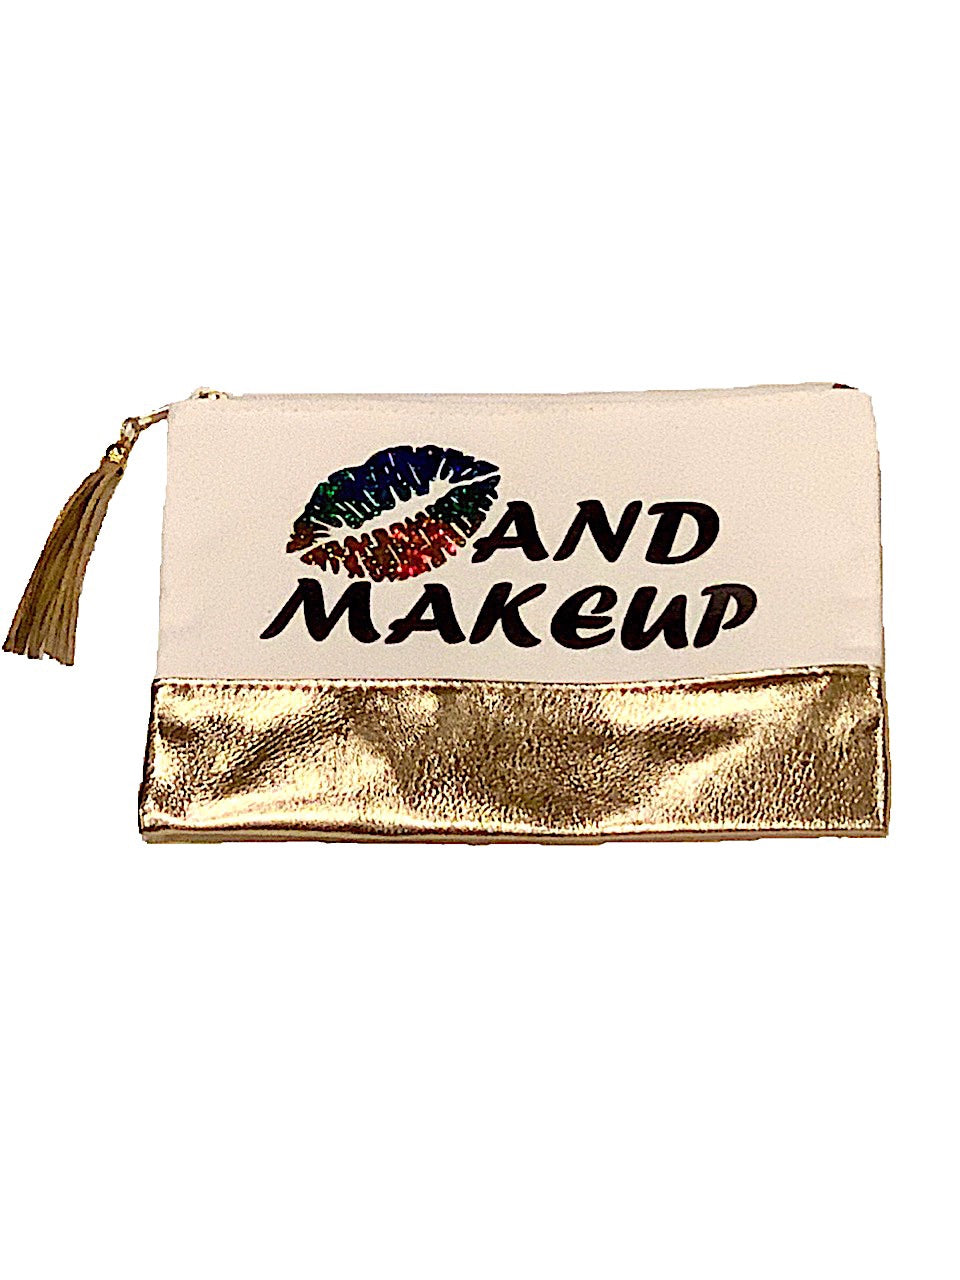 KISS AND MAKEUP CANVAS POUCH